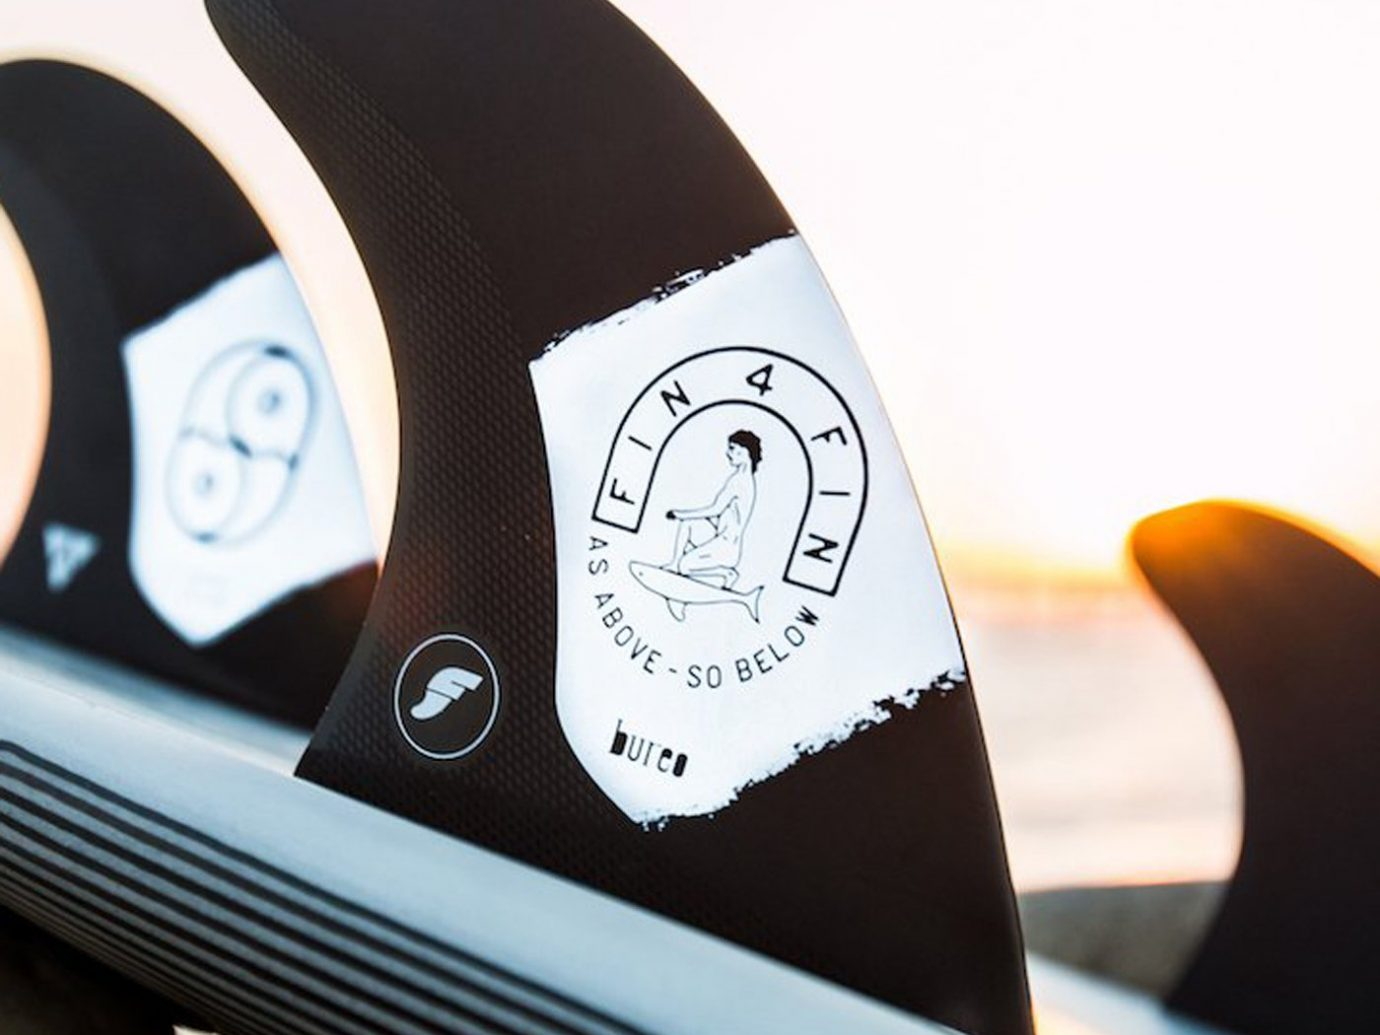 The Lost Explorer X Bureo Surf Fin